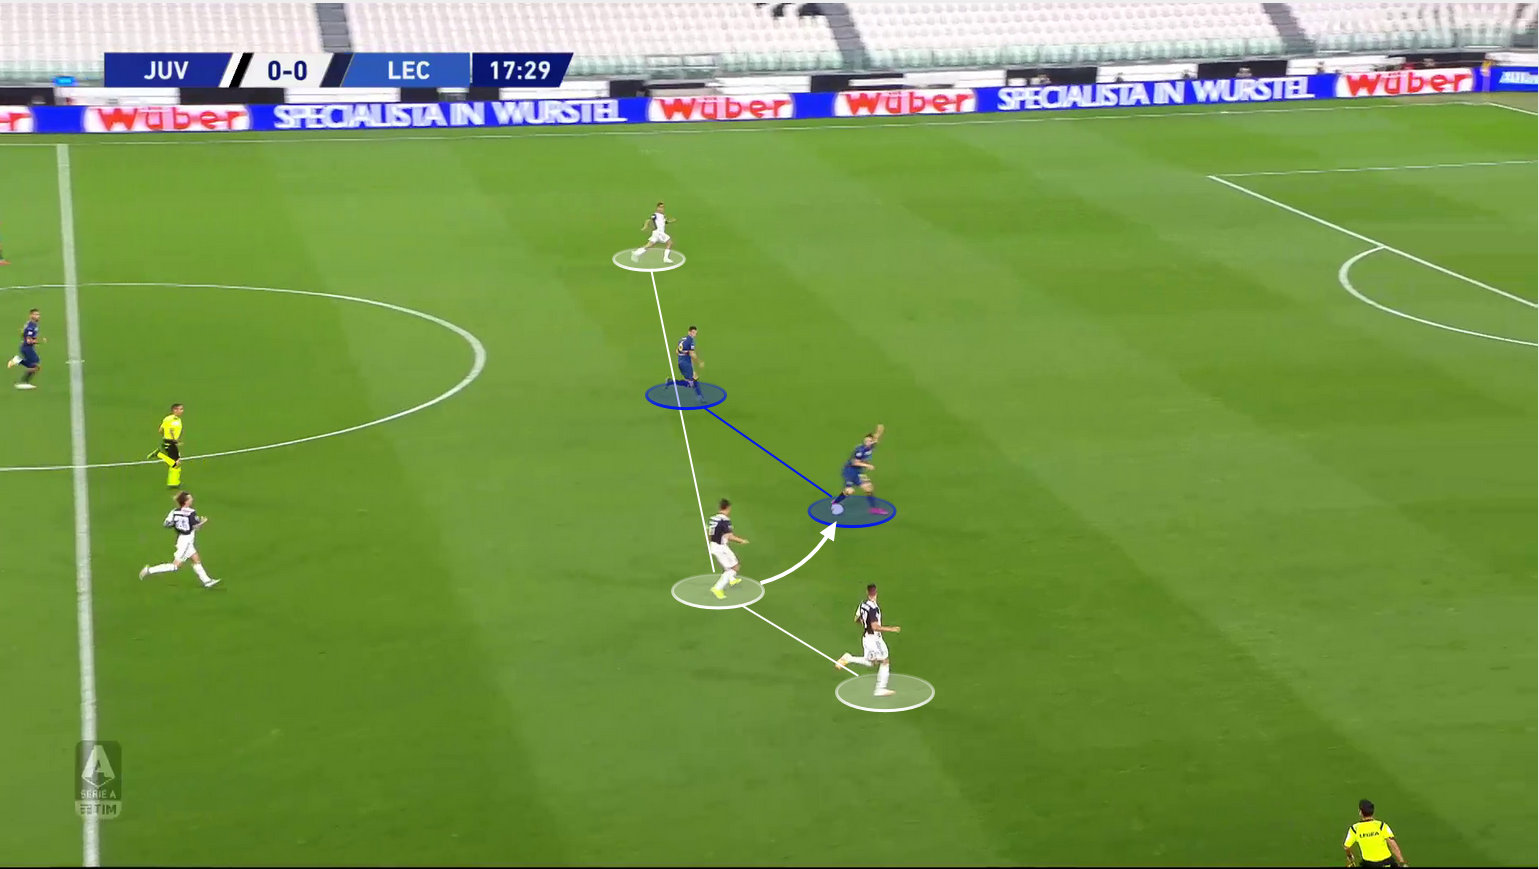 Serie A 2019/20: Juventus vs Lecce - tactical analysis tactics